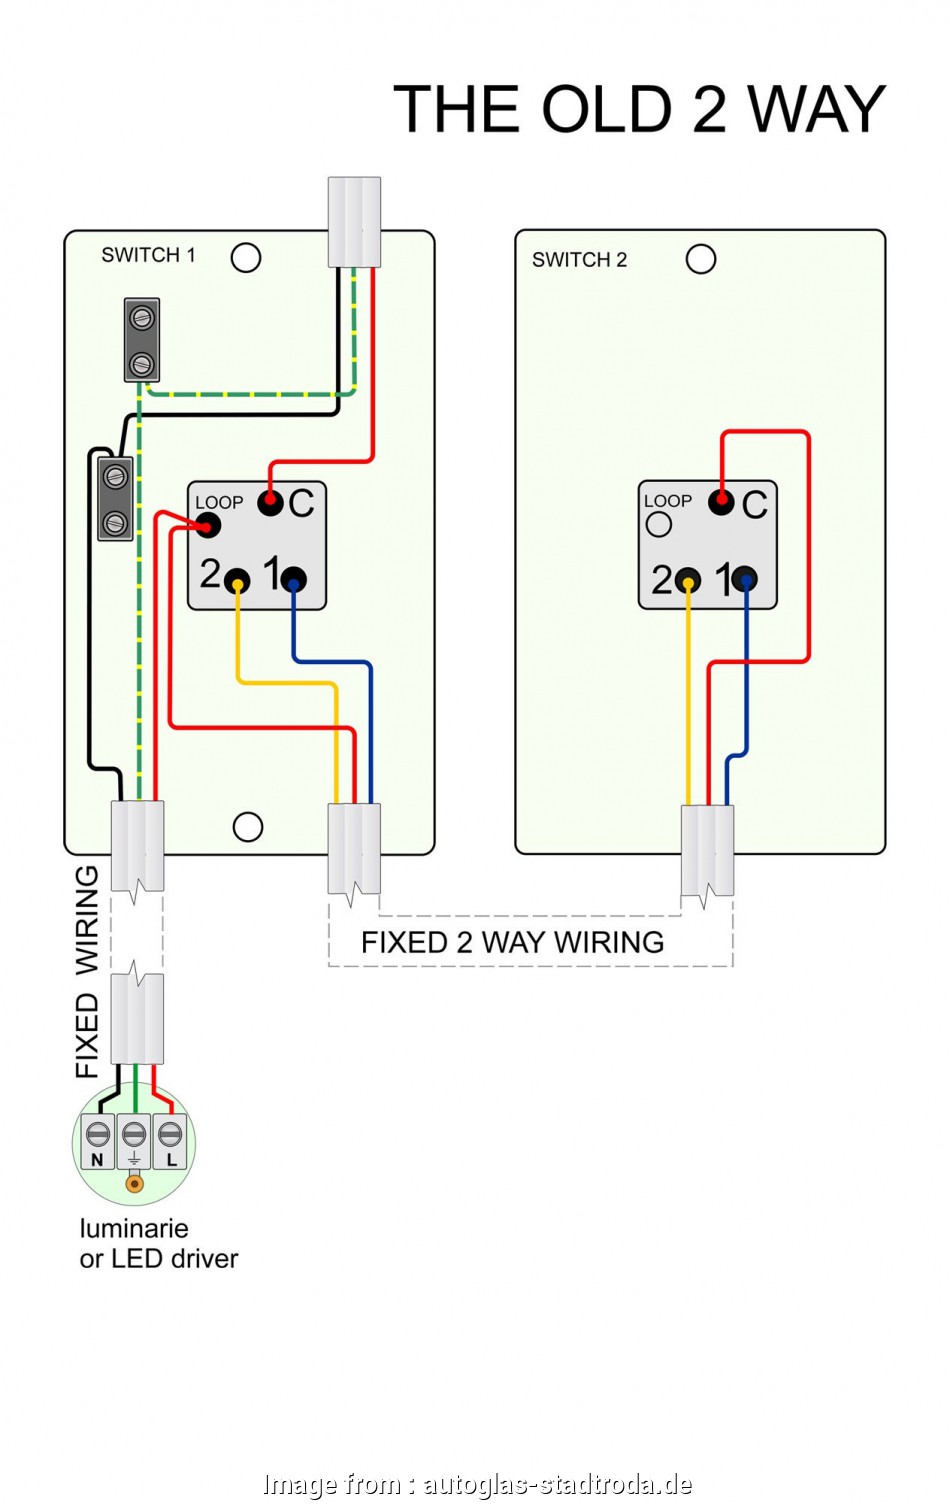 2-wire dimmer light switch wiring a double dimmer light switch diagram simple dimmer switch rh joescablecar, 3 Wire Dimmer Switch Diagram 3 Wire Dimmer Switch Diagram 2-Wire Dimmer Light Switch New Wiring A Double Dimmer Light Switch Diagram Simple Dimmer Switch Rh Joescablecar, 3 Wire Dimmer Switch Diagram 3 Wire Dimmer Switch Diagram Pictures